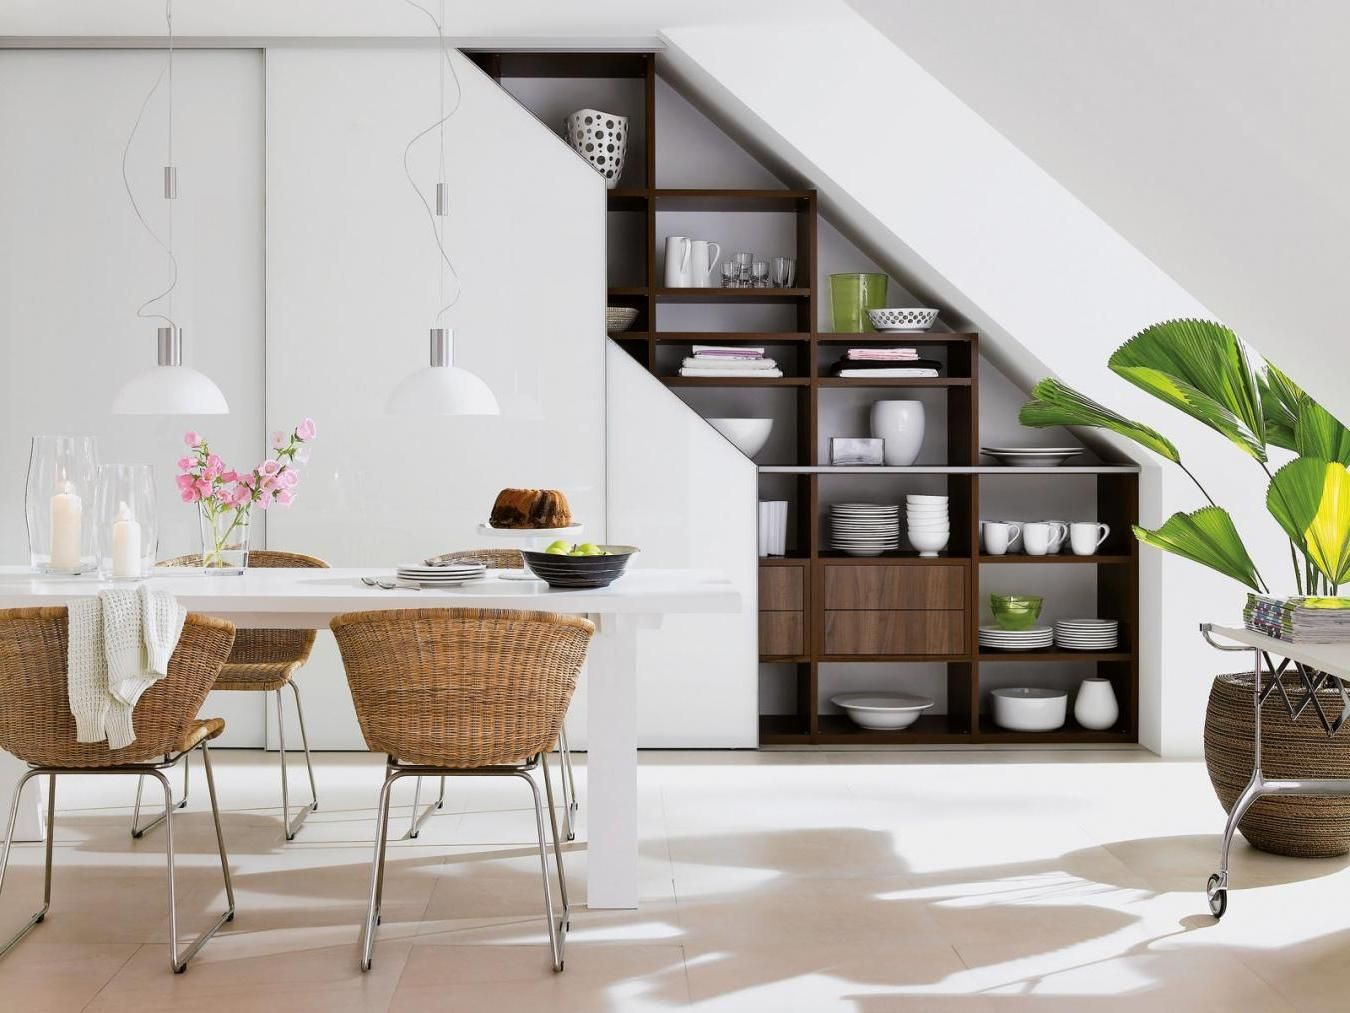 Nice wooden shelving for dining set under the staircase along with a